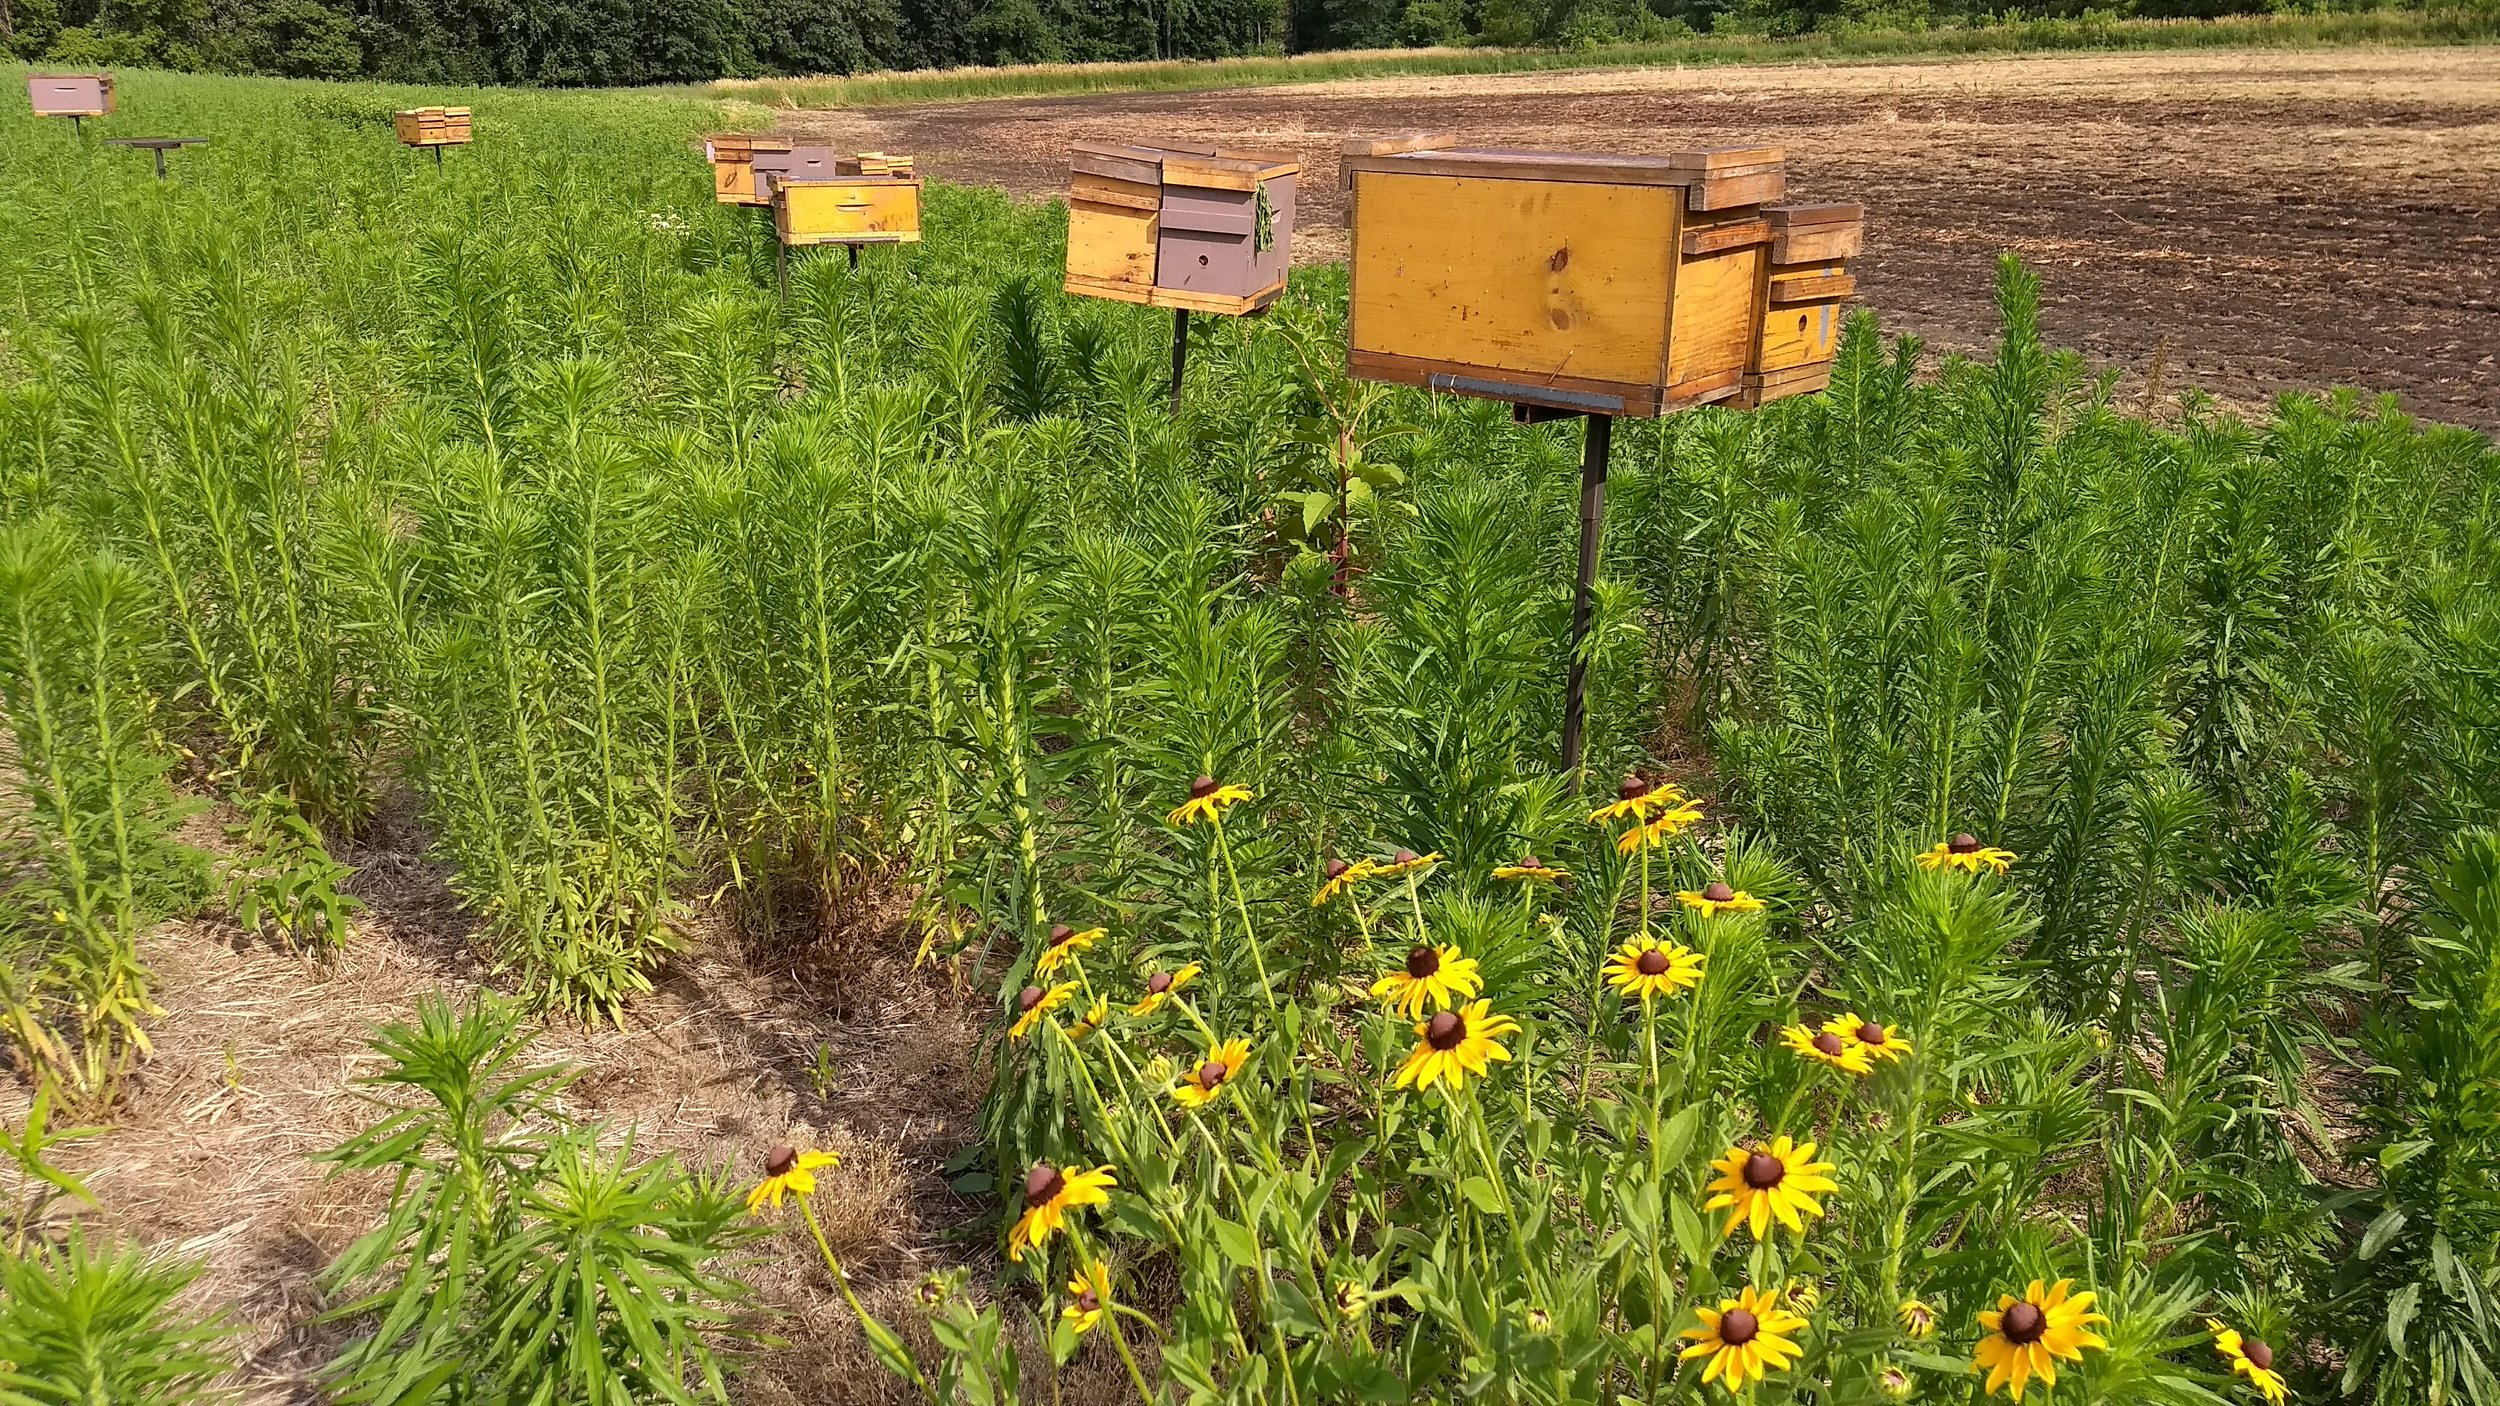 Rudbeckia with the honey bee mating nucs - hopefully it helps the queens find their way back!